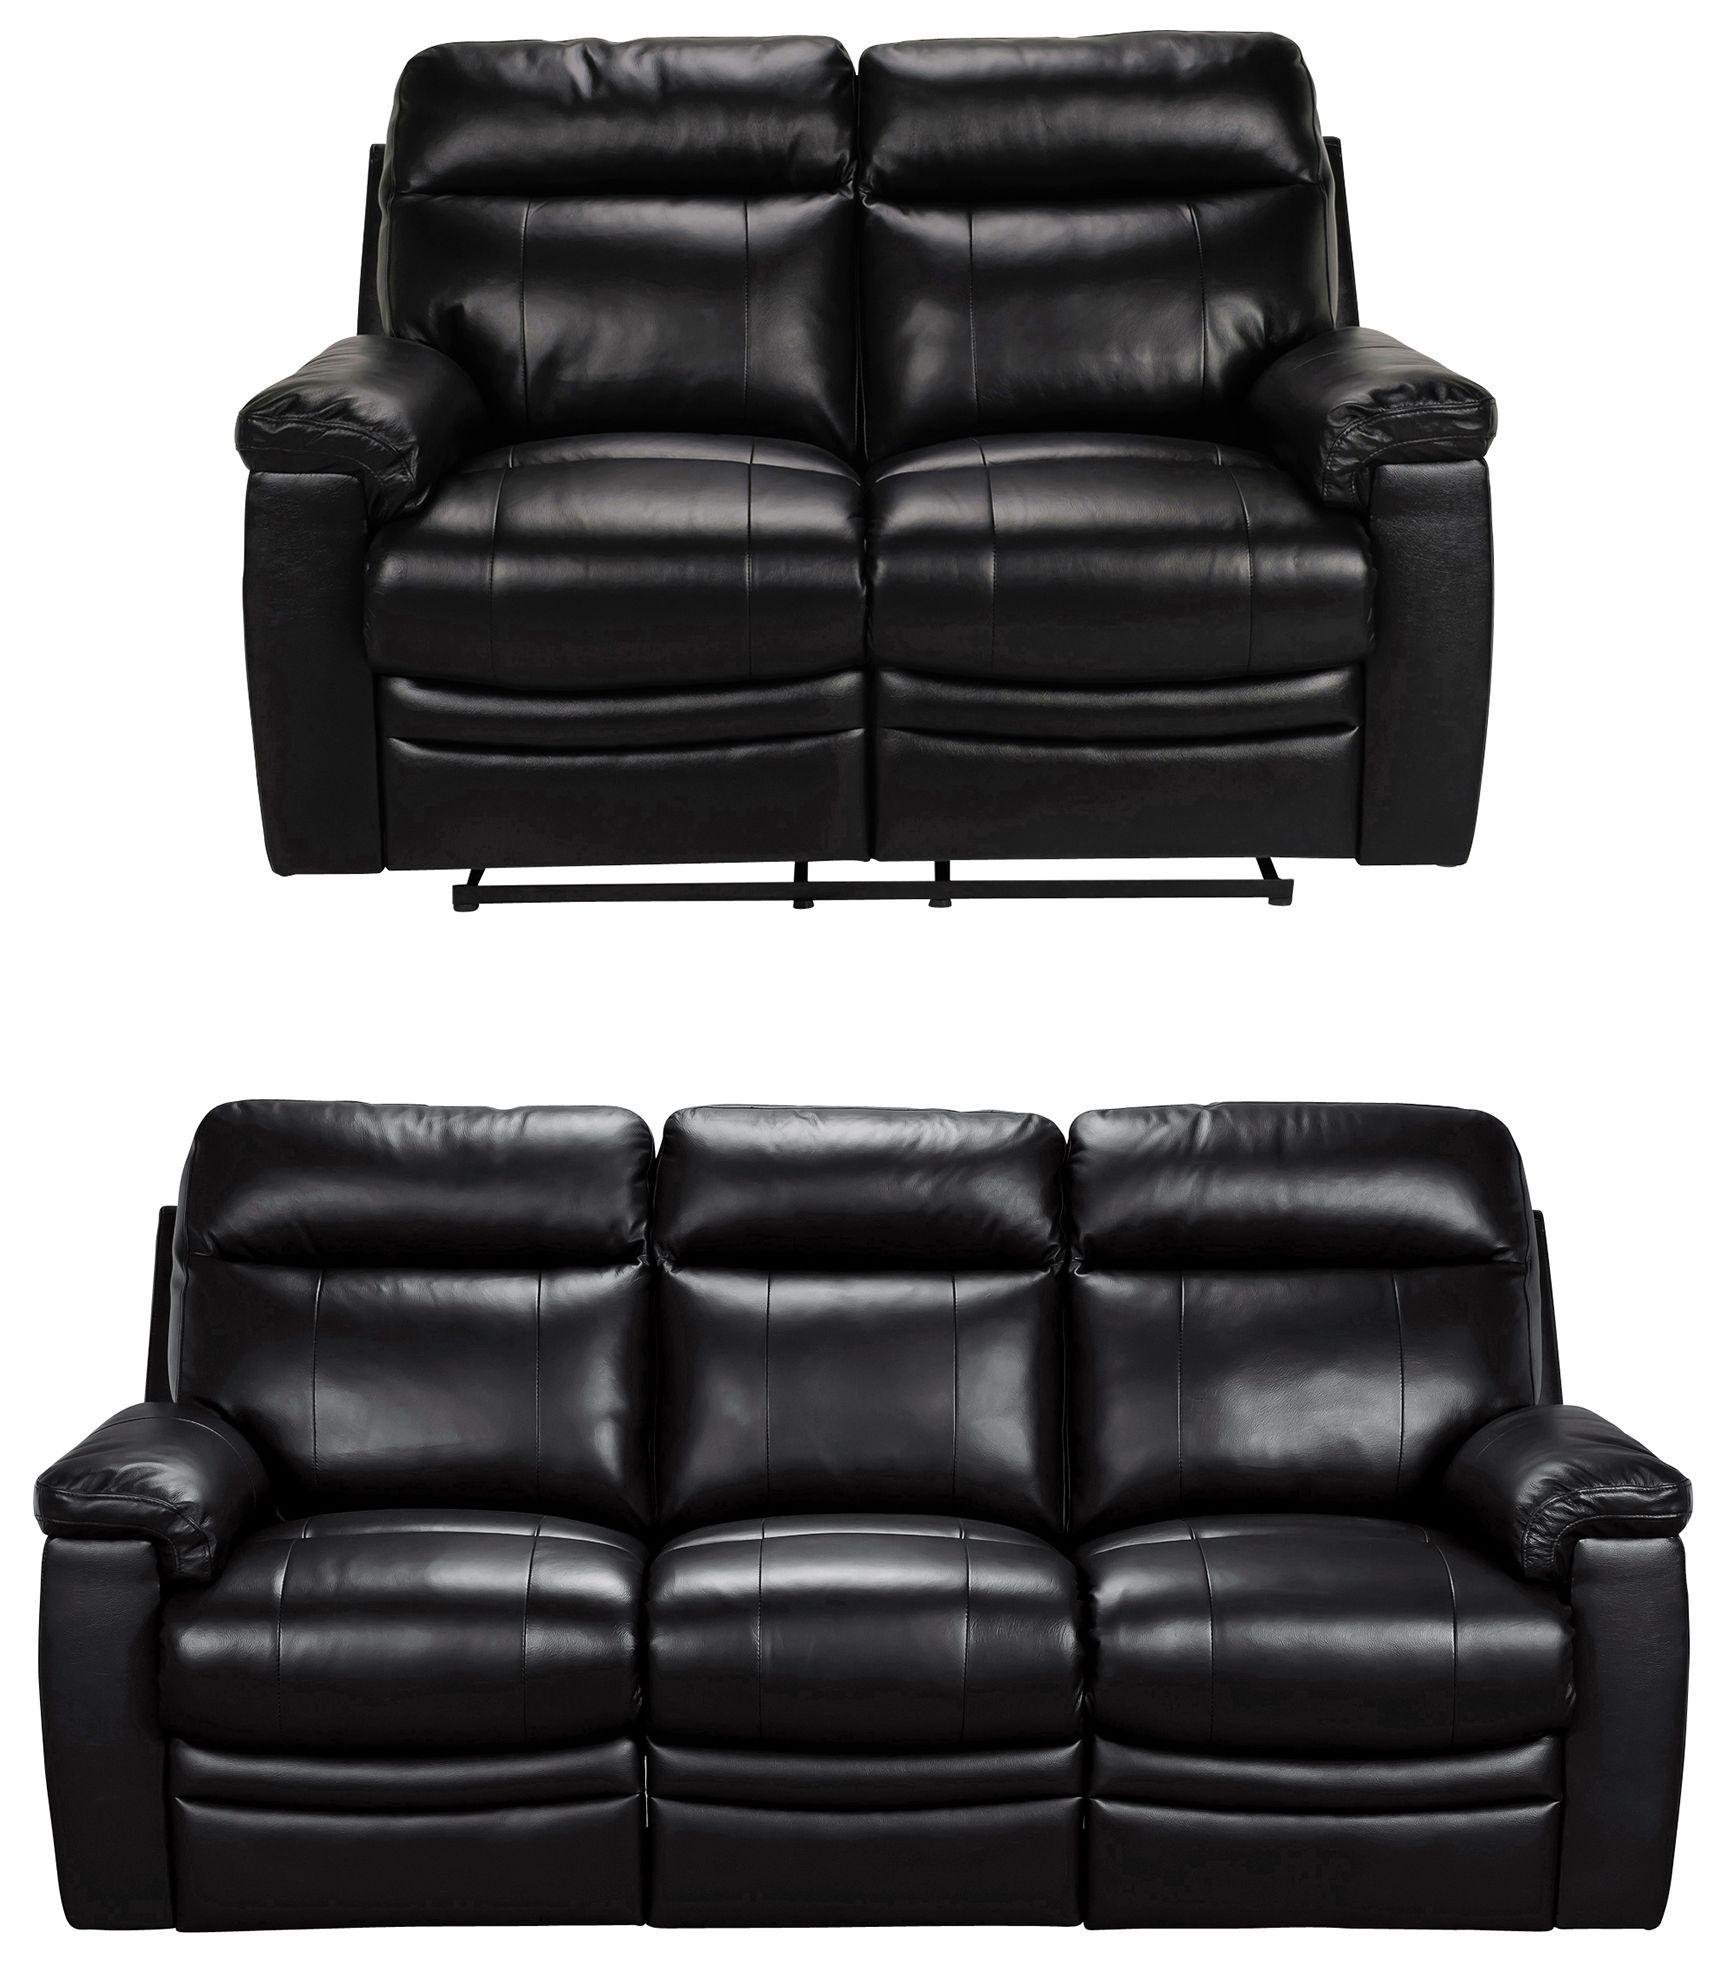 Argos Home Paolo 2 & 3 Seater Manual Recliner Sofas - Black